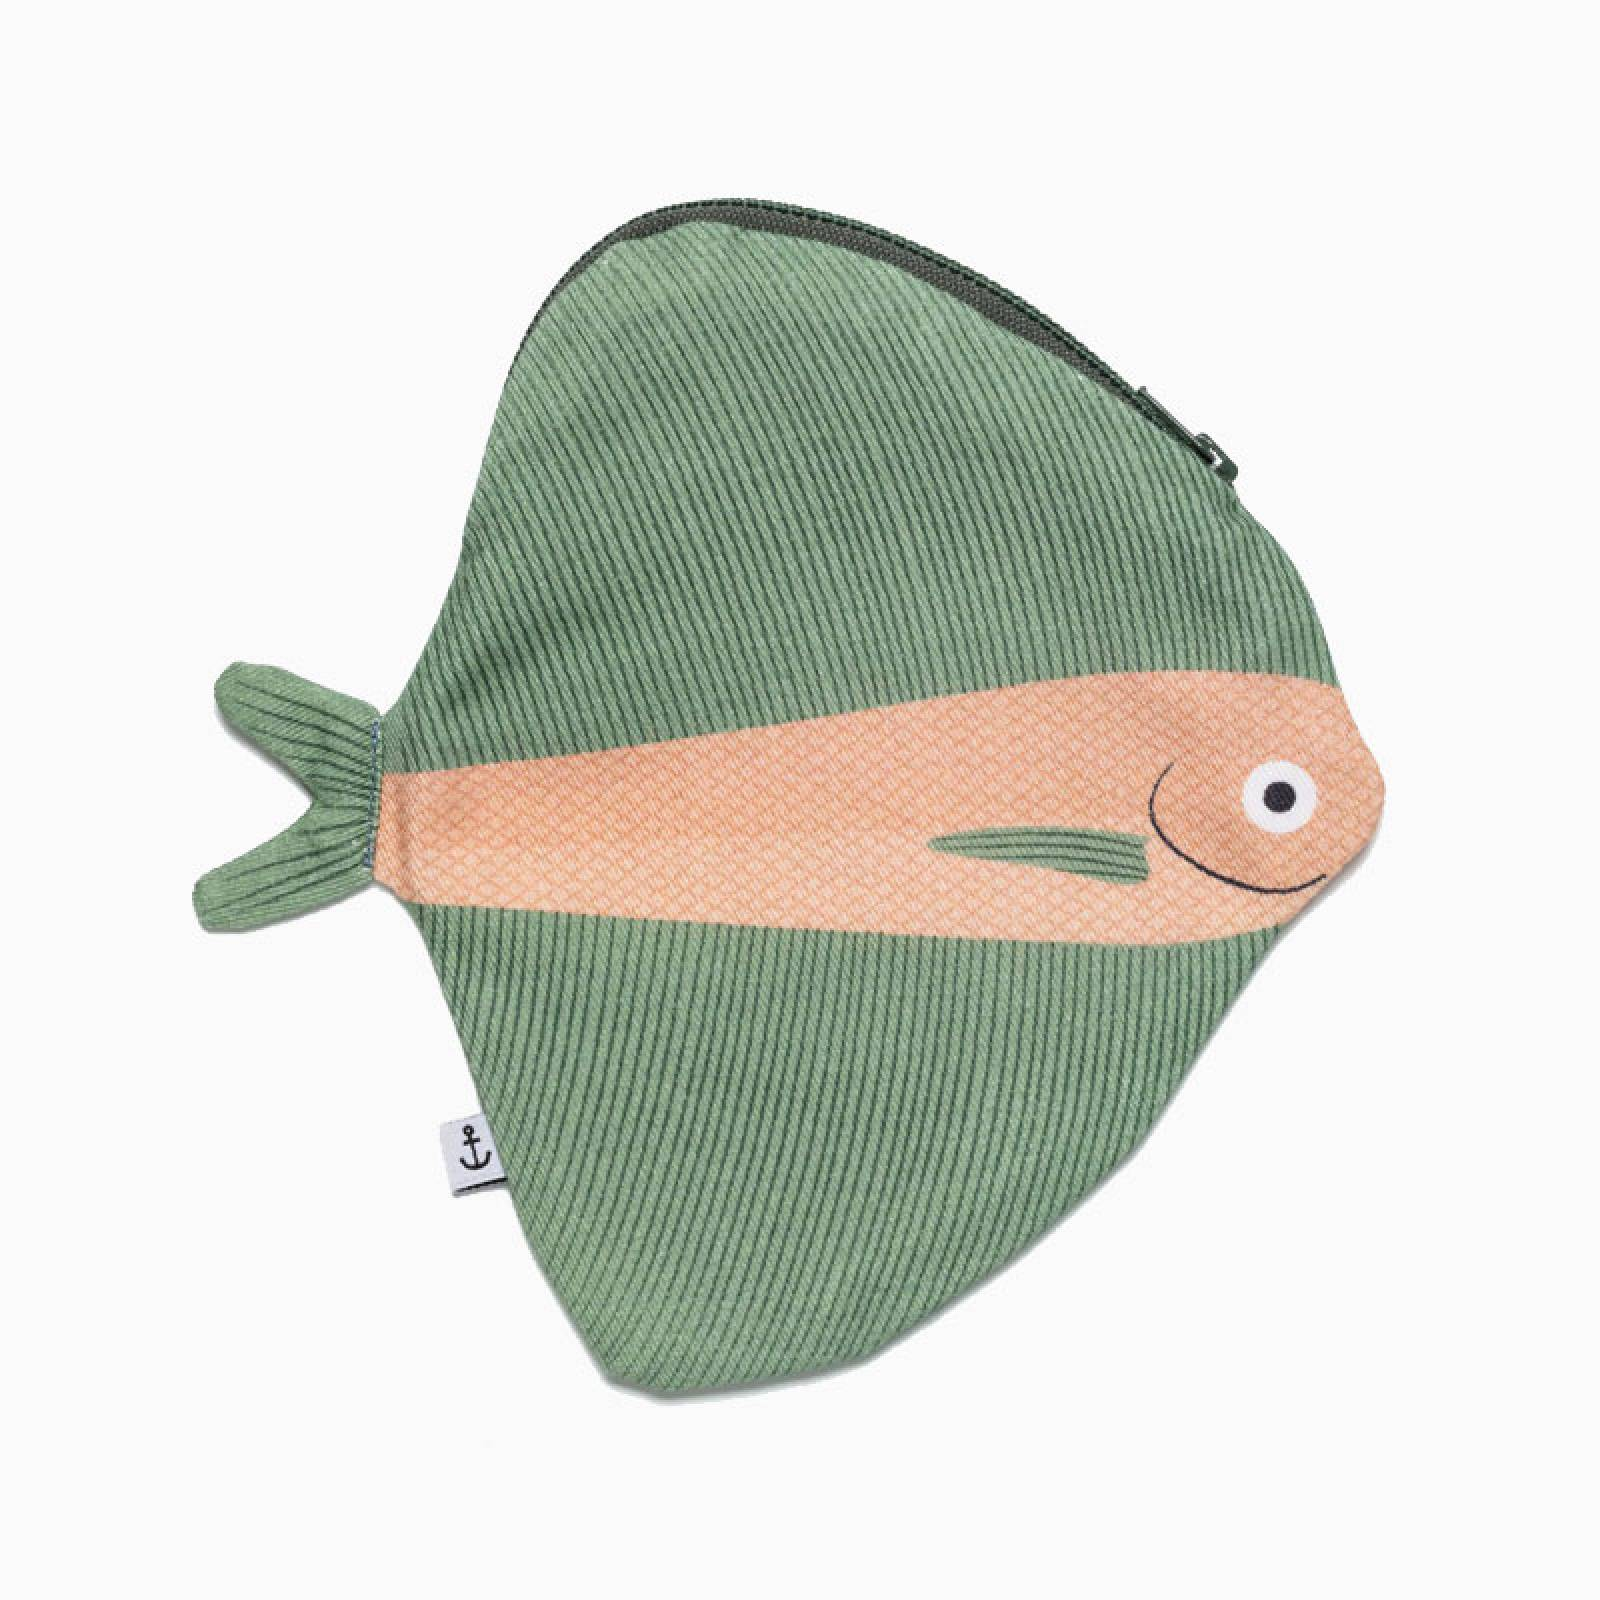 Zipped Fish Pouch By Don Fisher - Green Fanfish